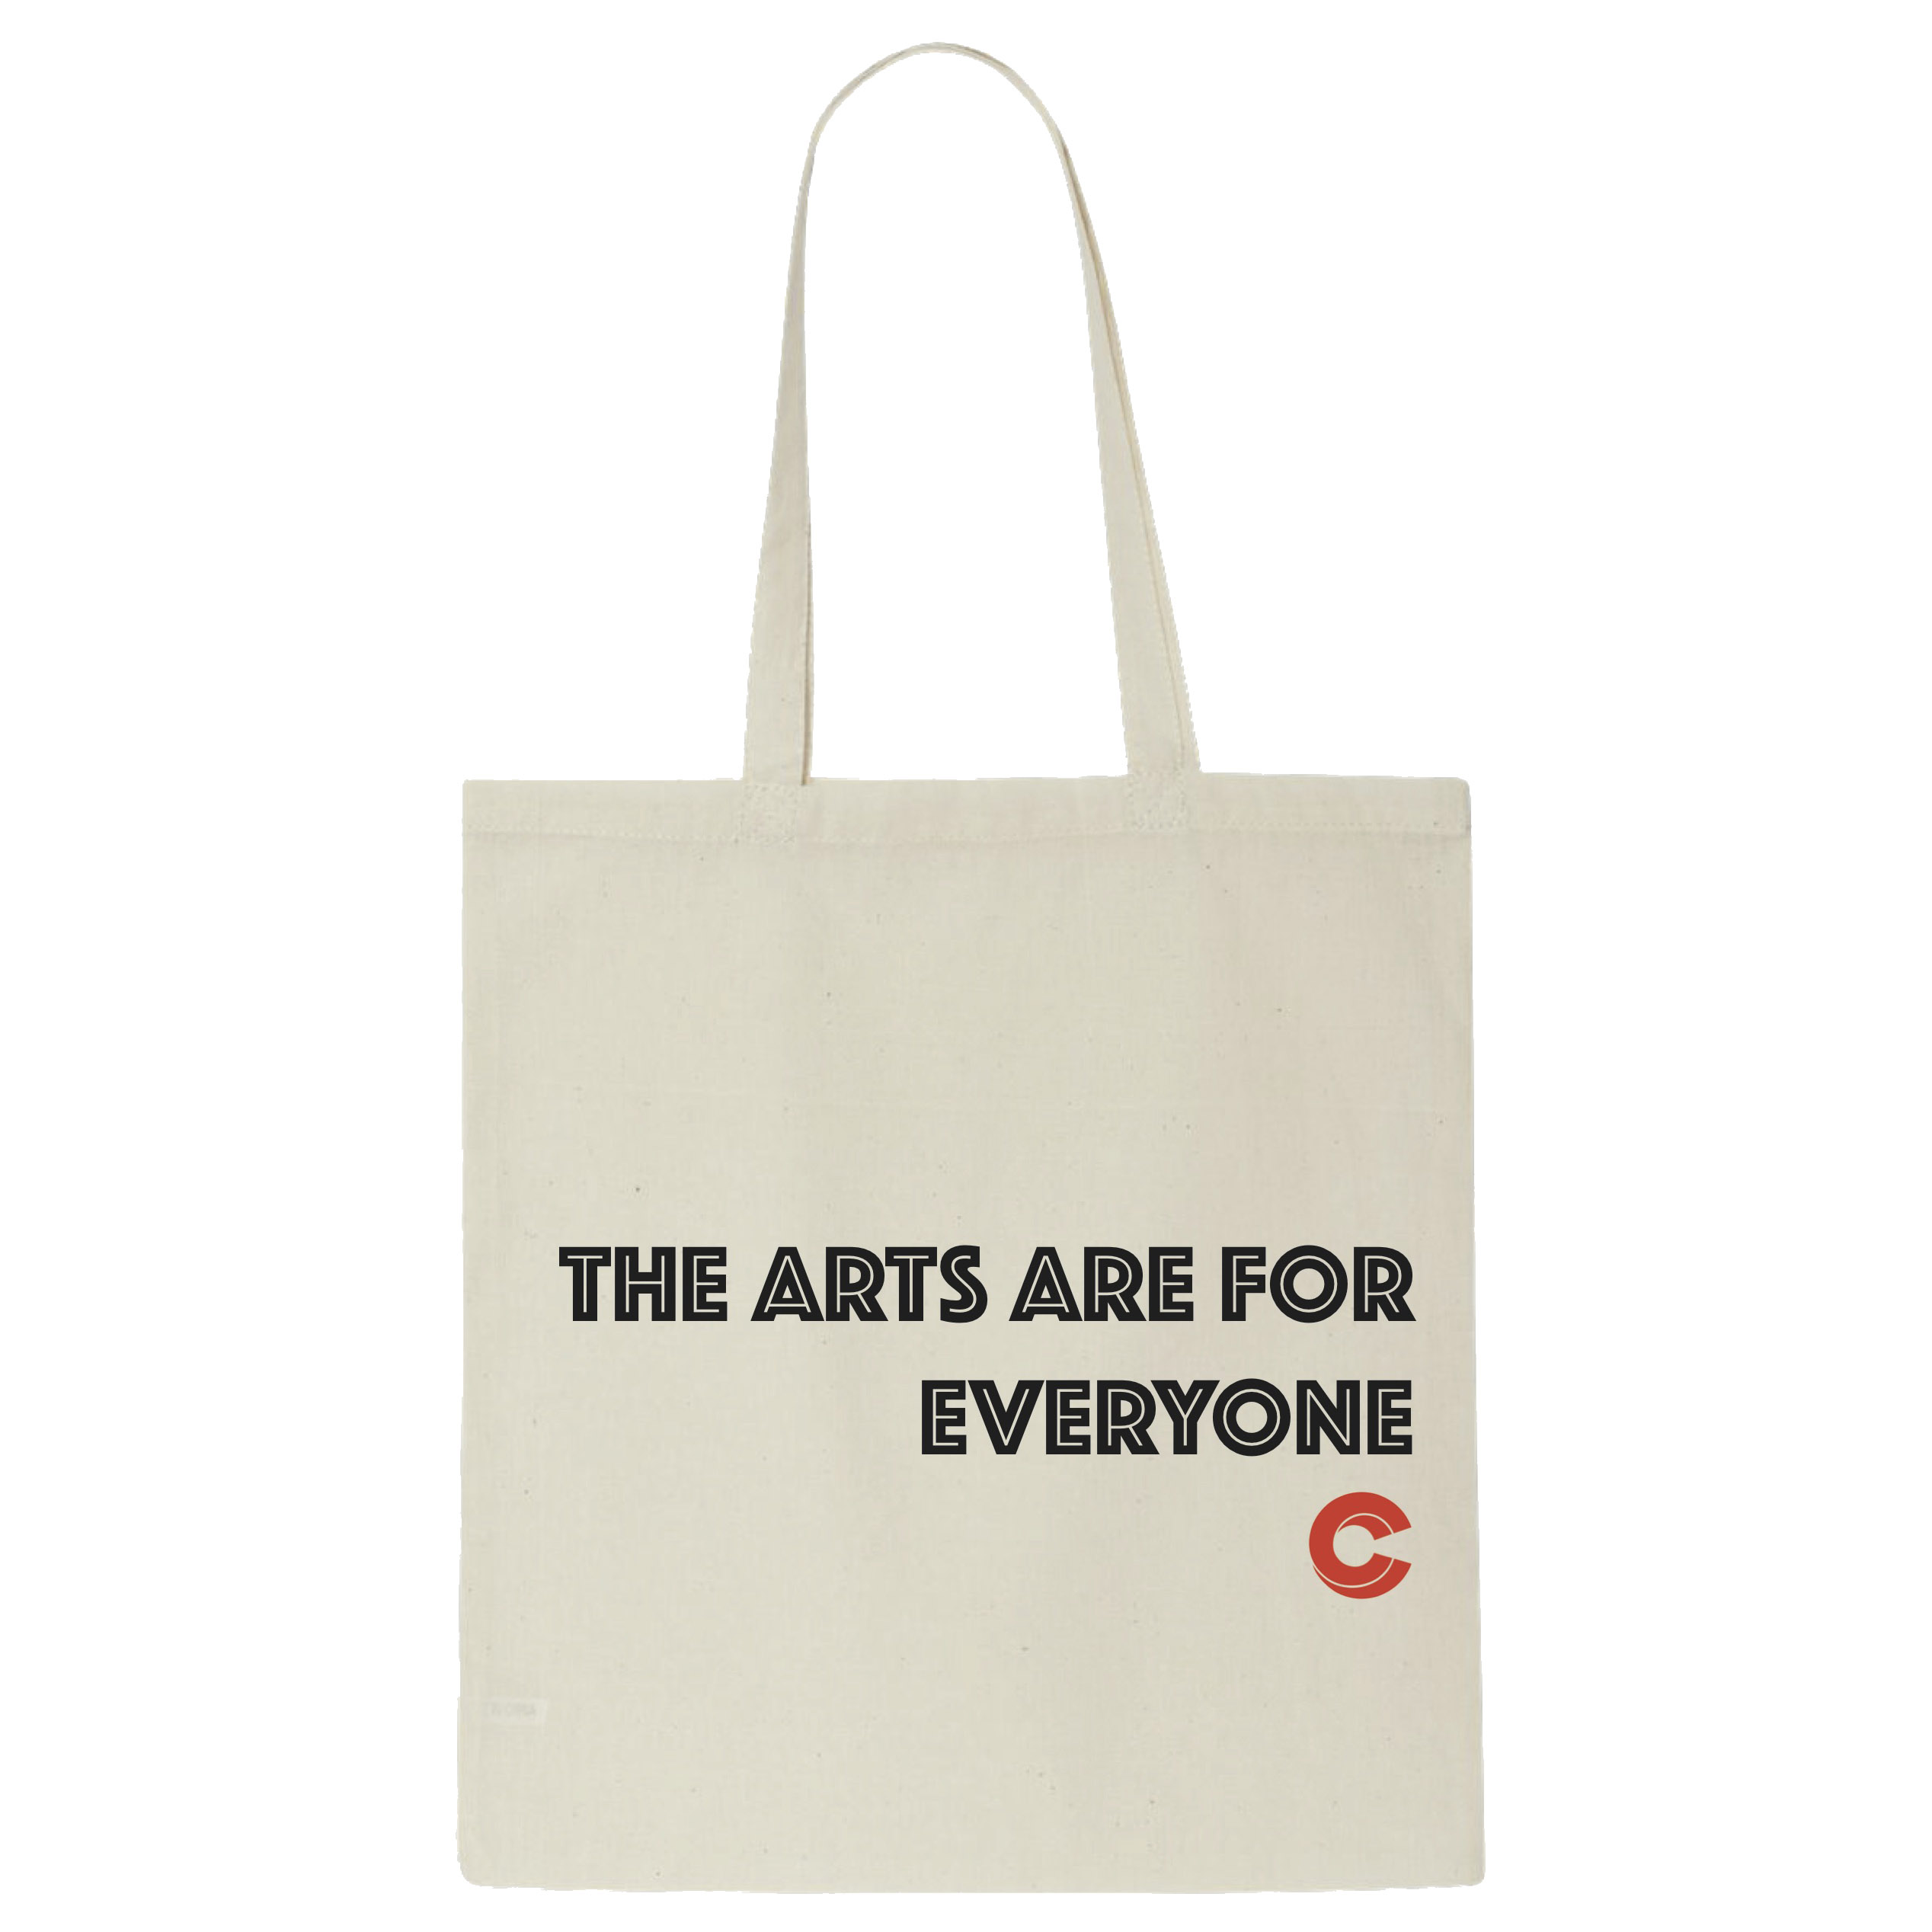 The Carrack ``The Arts Are For Everyone`` Tote Bag